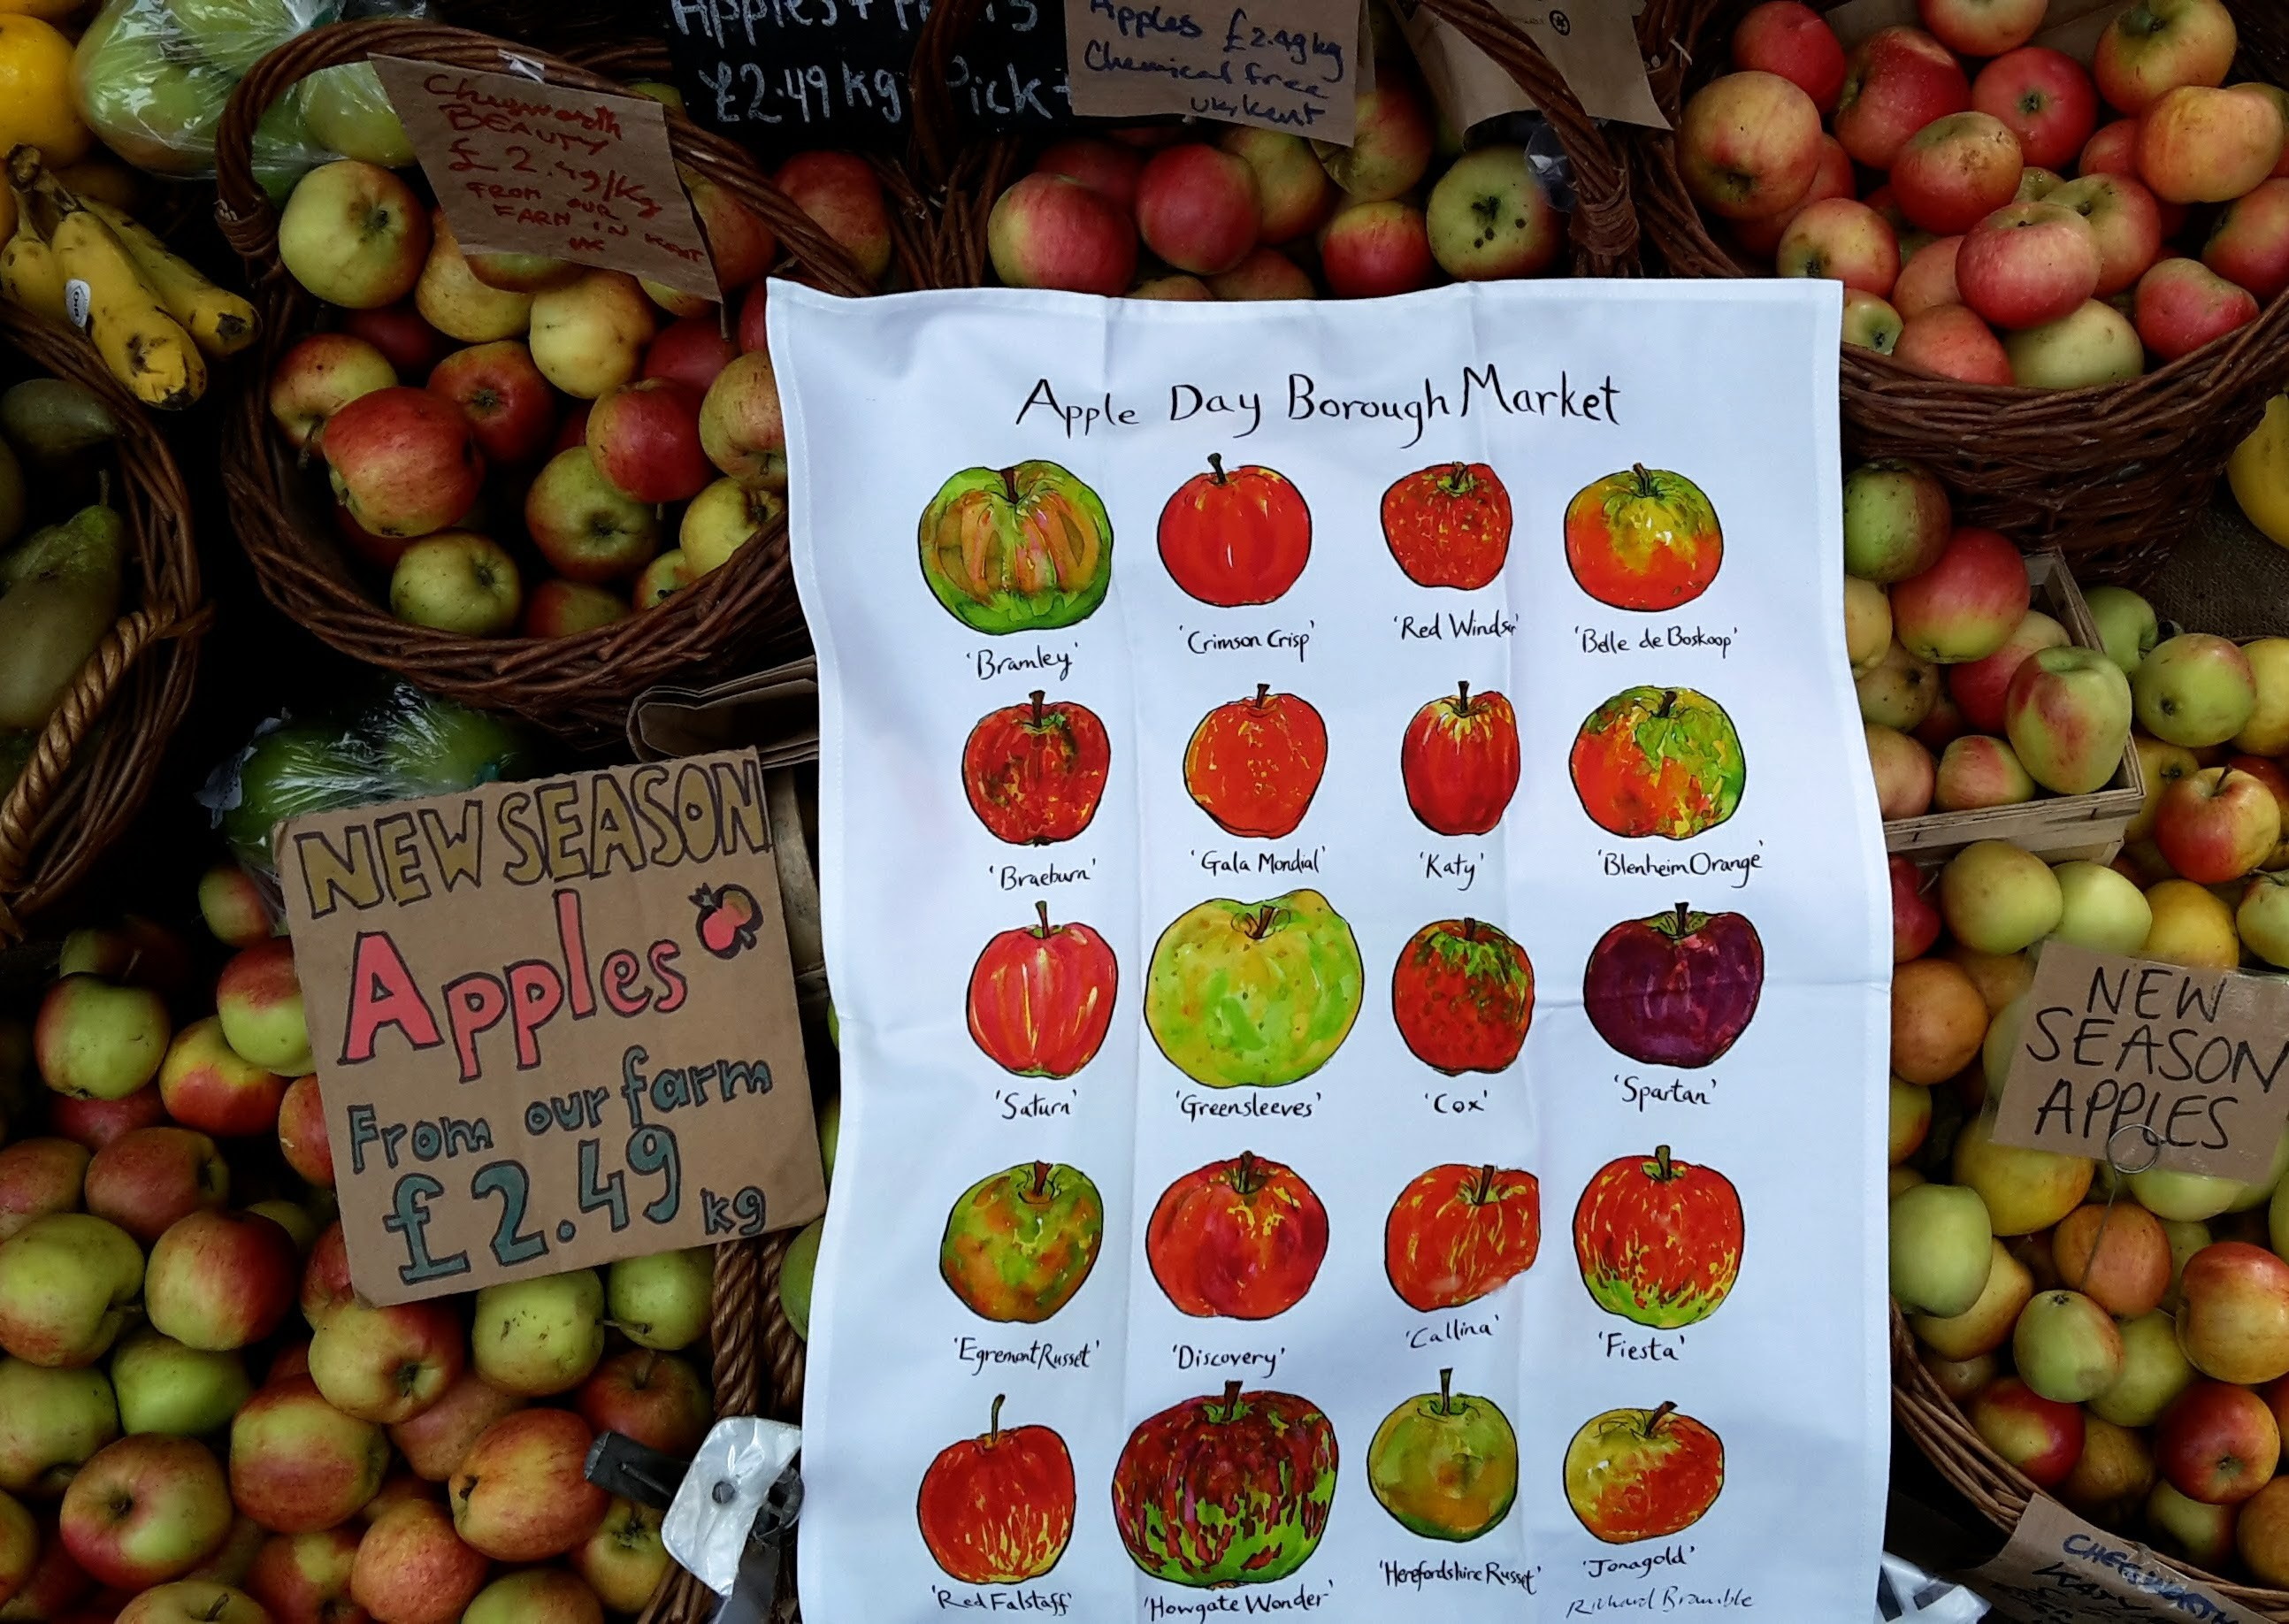 We are at Borough Market's Apple Day Celebration